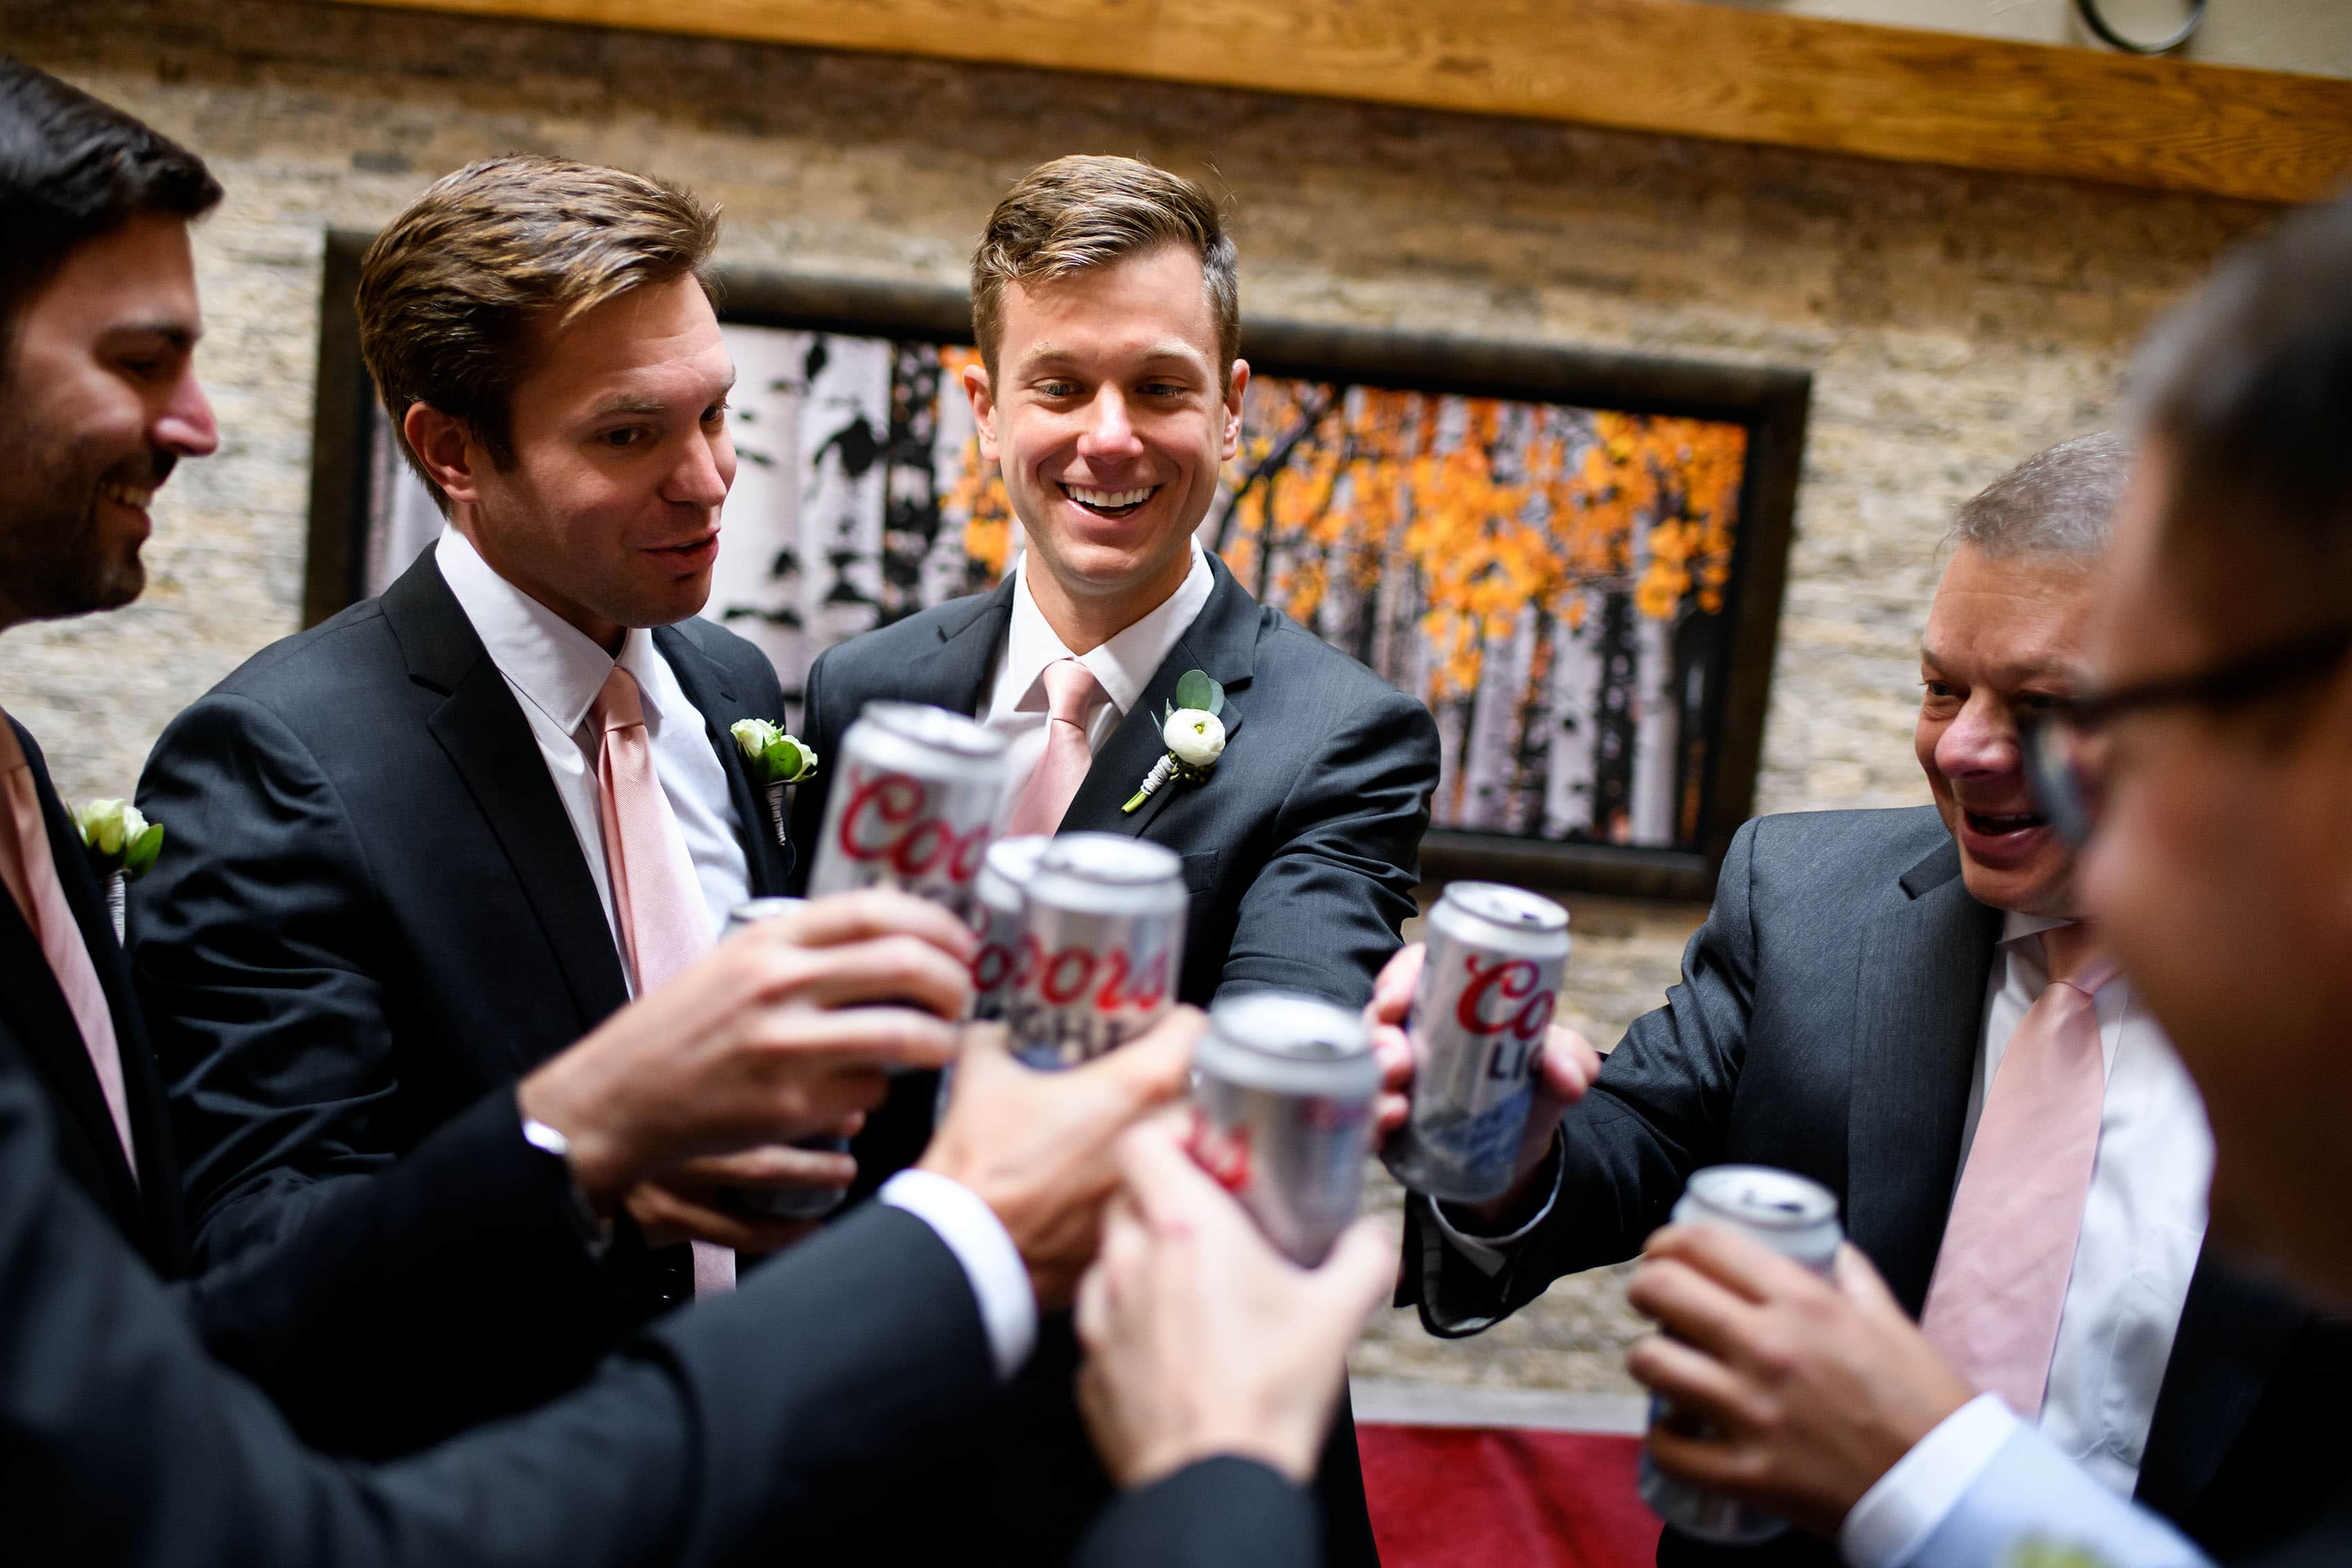 Groomsmen toast Coors Light on the wedding day